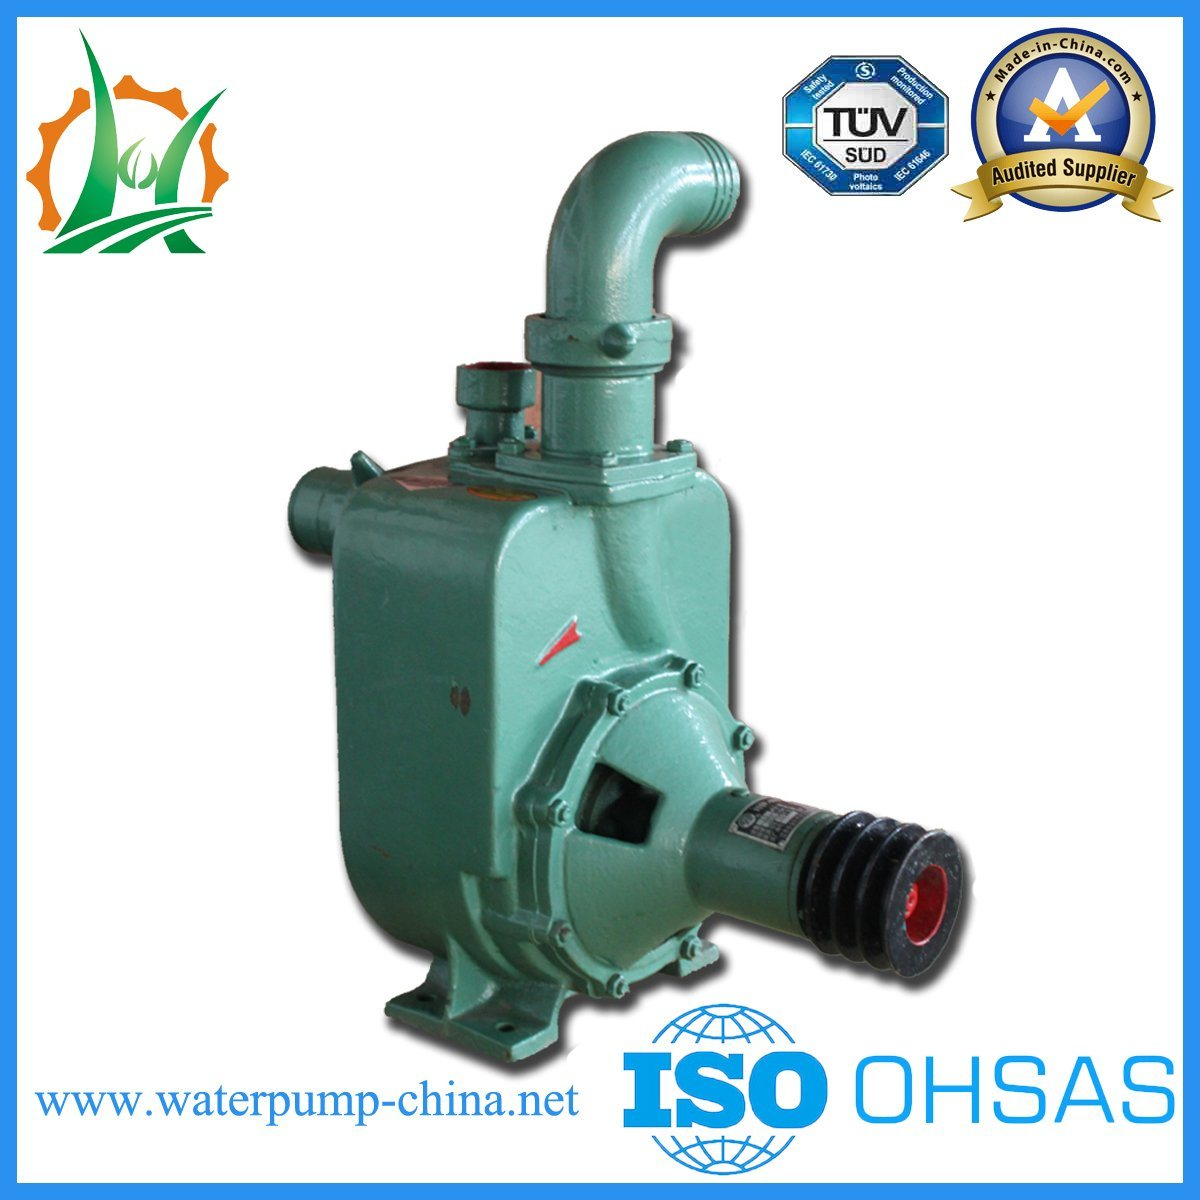 3 Inch Self Priming Agricultural Spray Diesel Pump